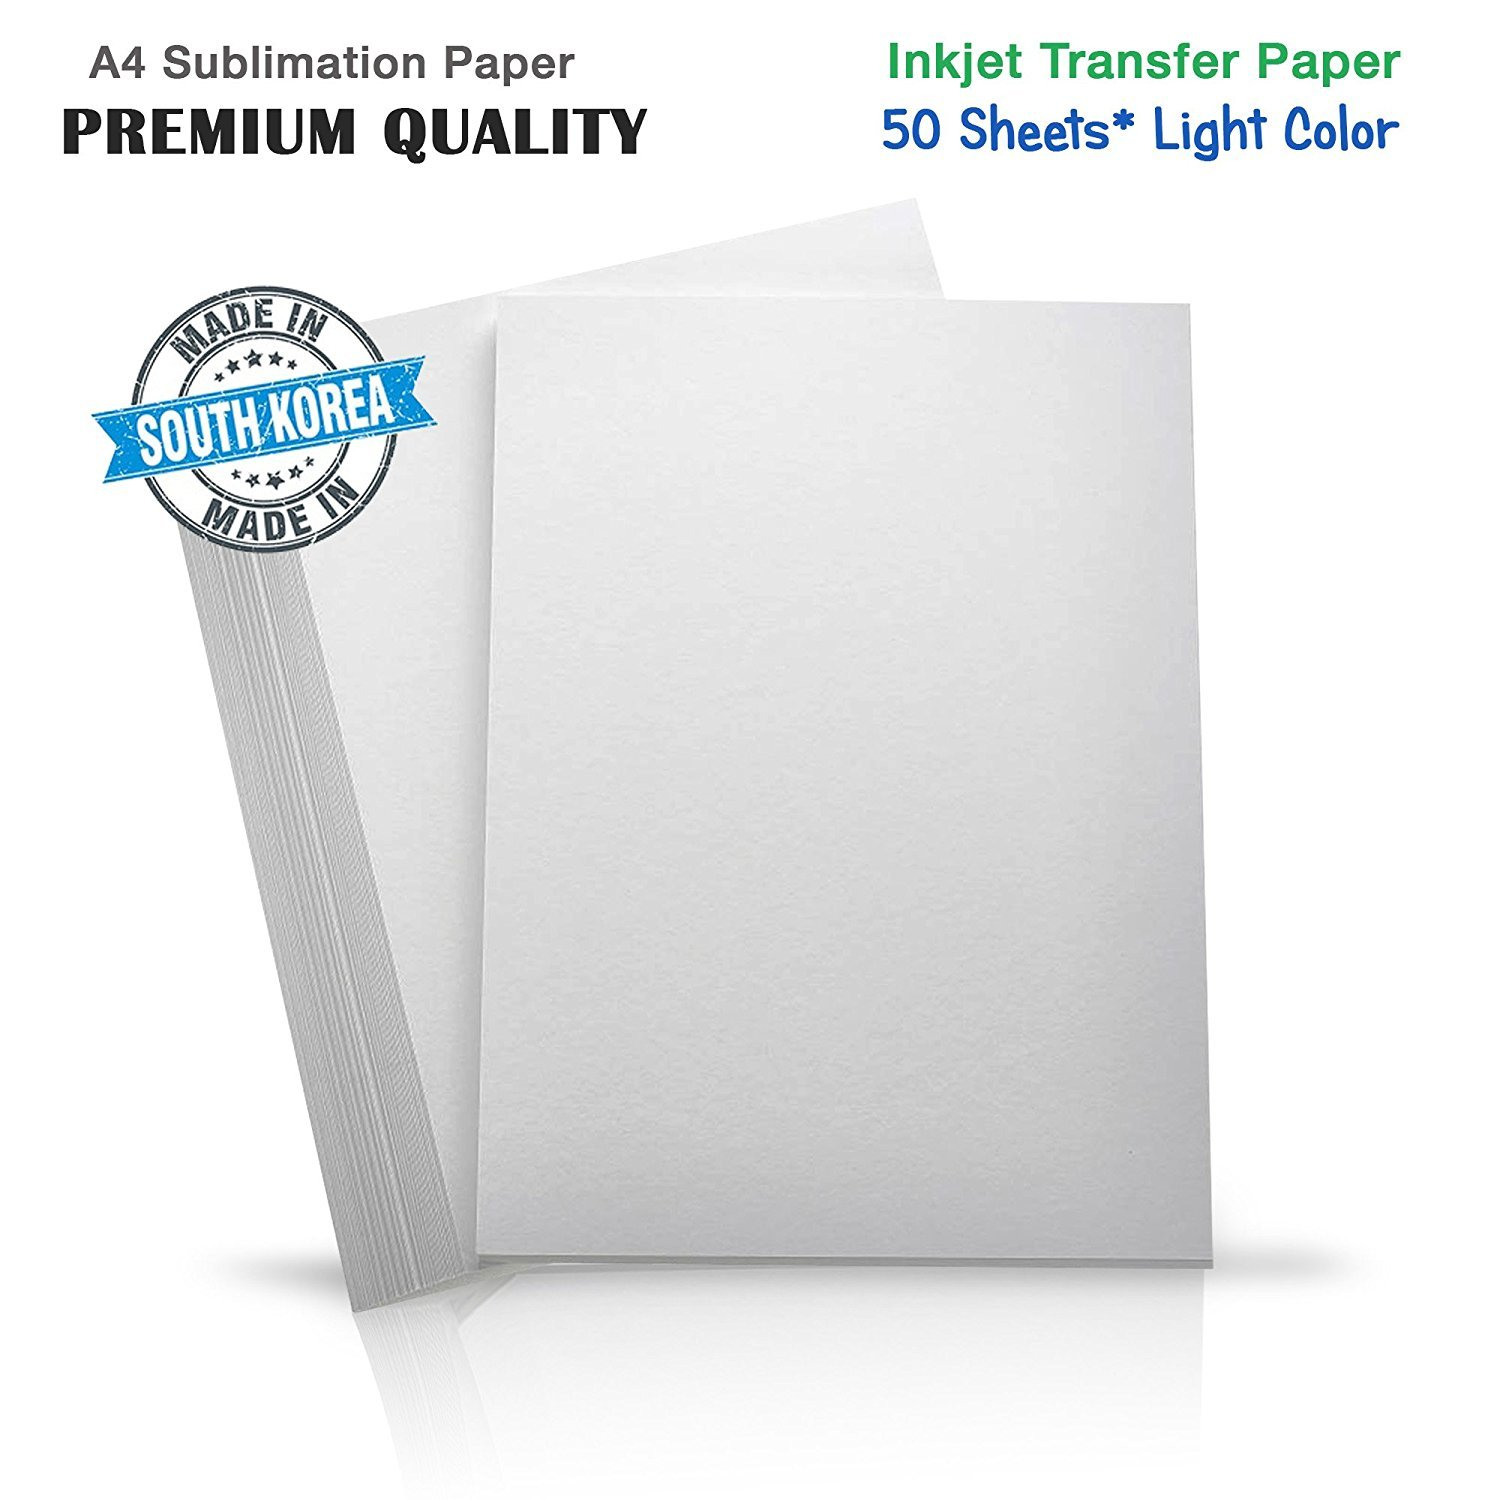 INKUTEN Premium Inkjet Heat Transfer Paper for (Light Colored Fabrics) Epson, Ricoh, SawGrass Printers (50 Sheets) A4